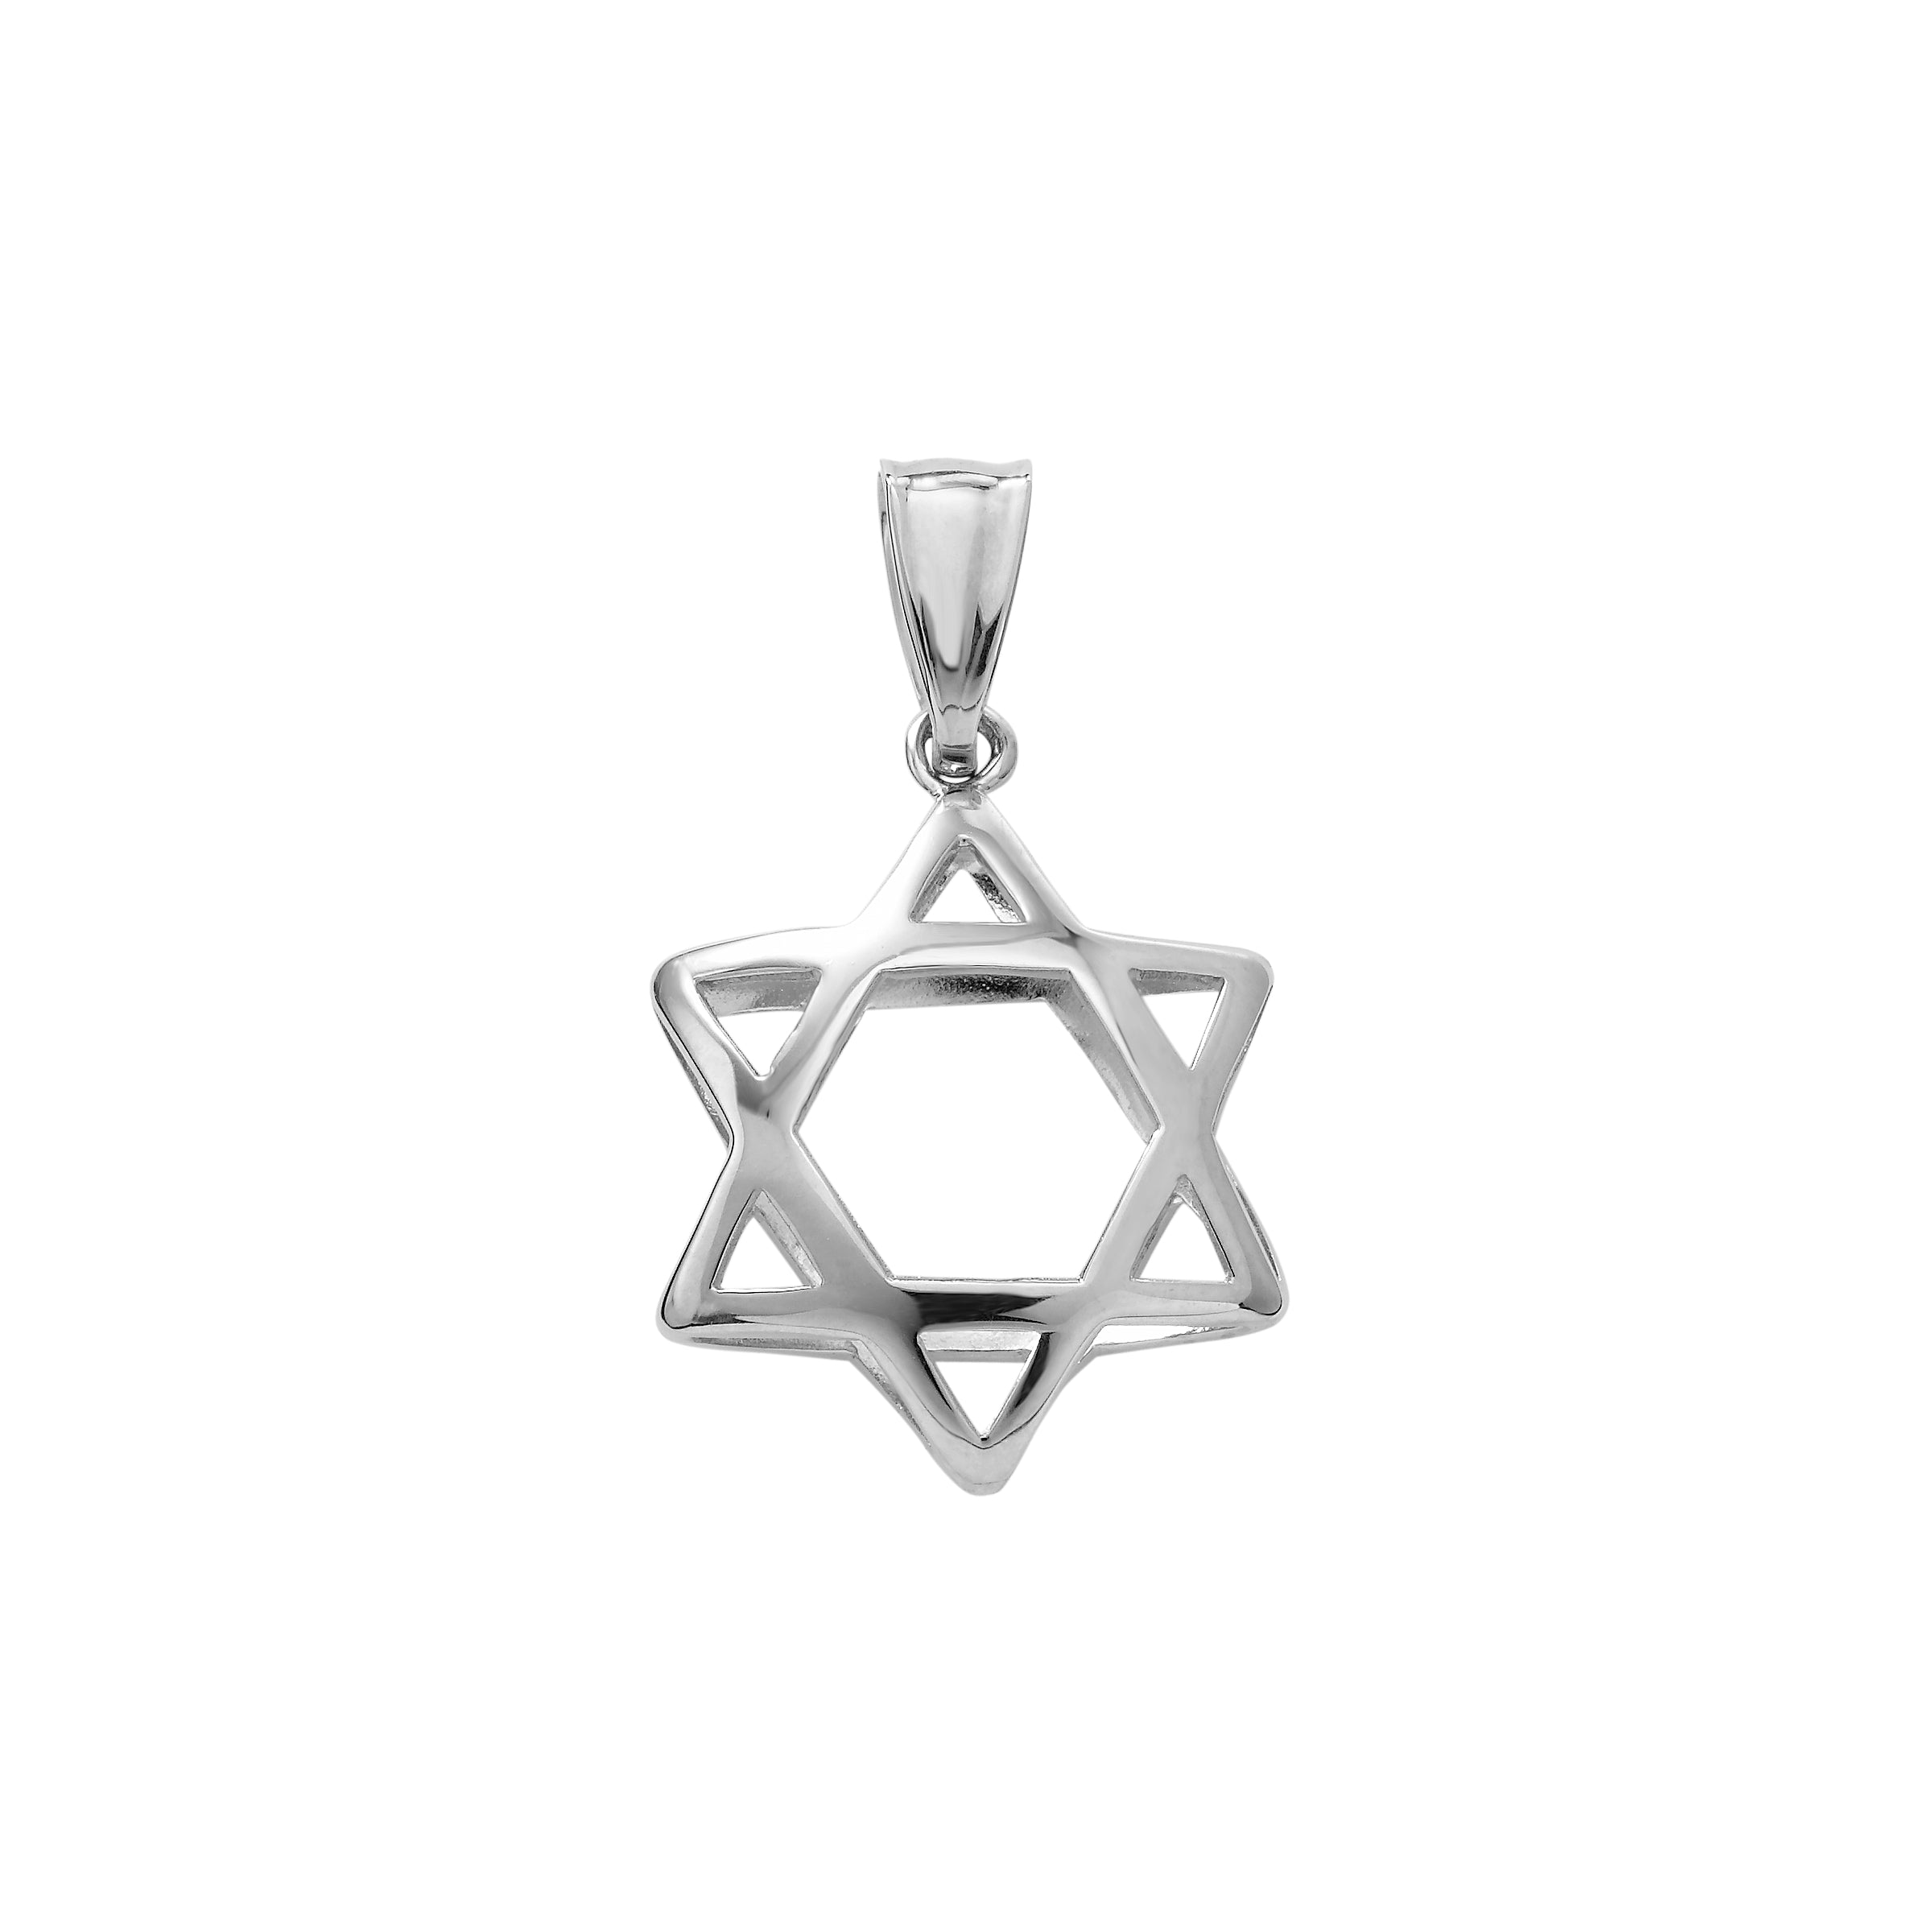 Star of David Silhouette Charm, 14KW